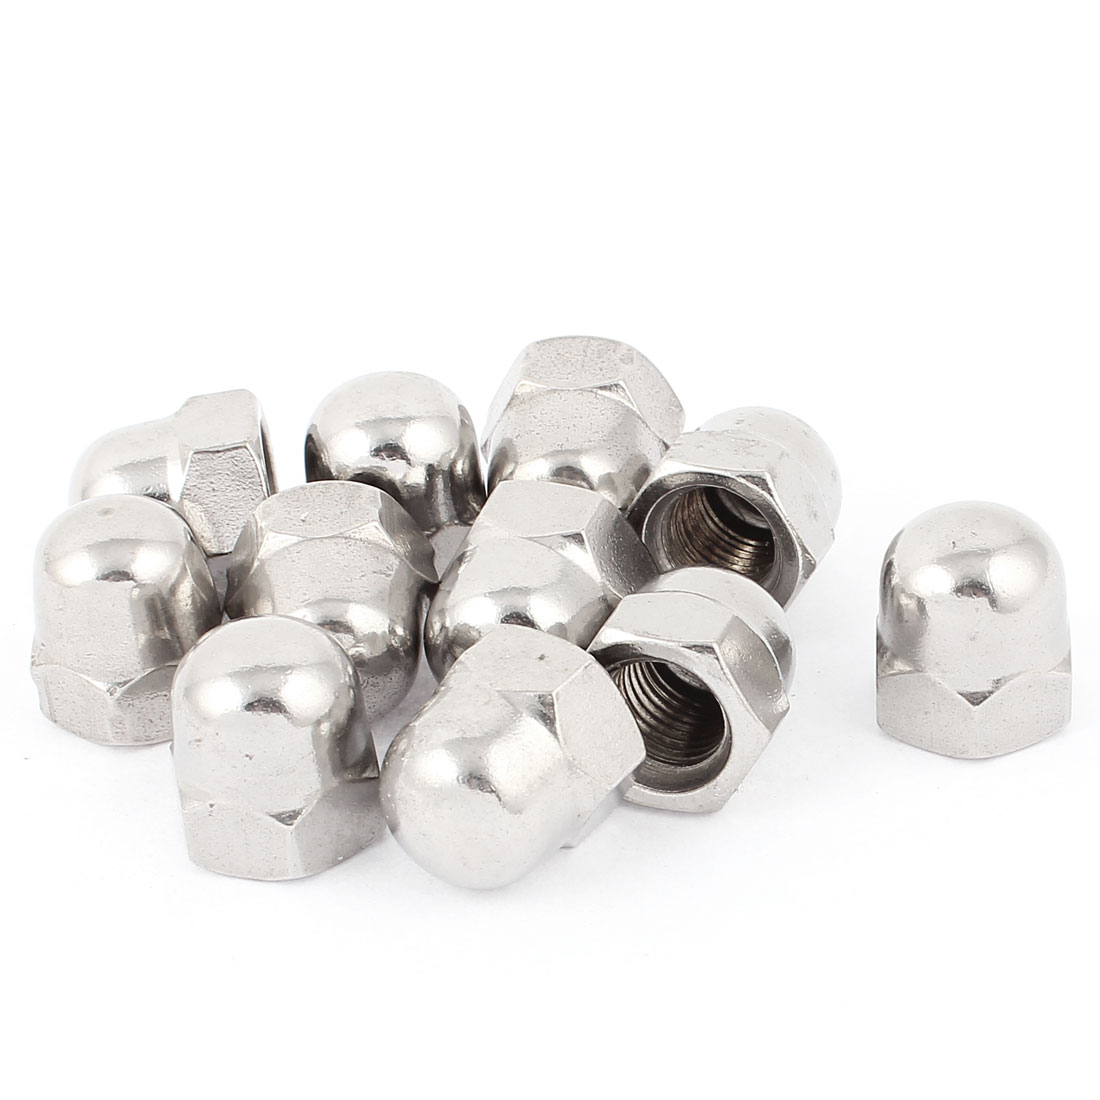 10pcs 304 Stainless Steel M16 Round Acorn Head Cap Nut Silver Tone